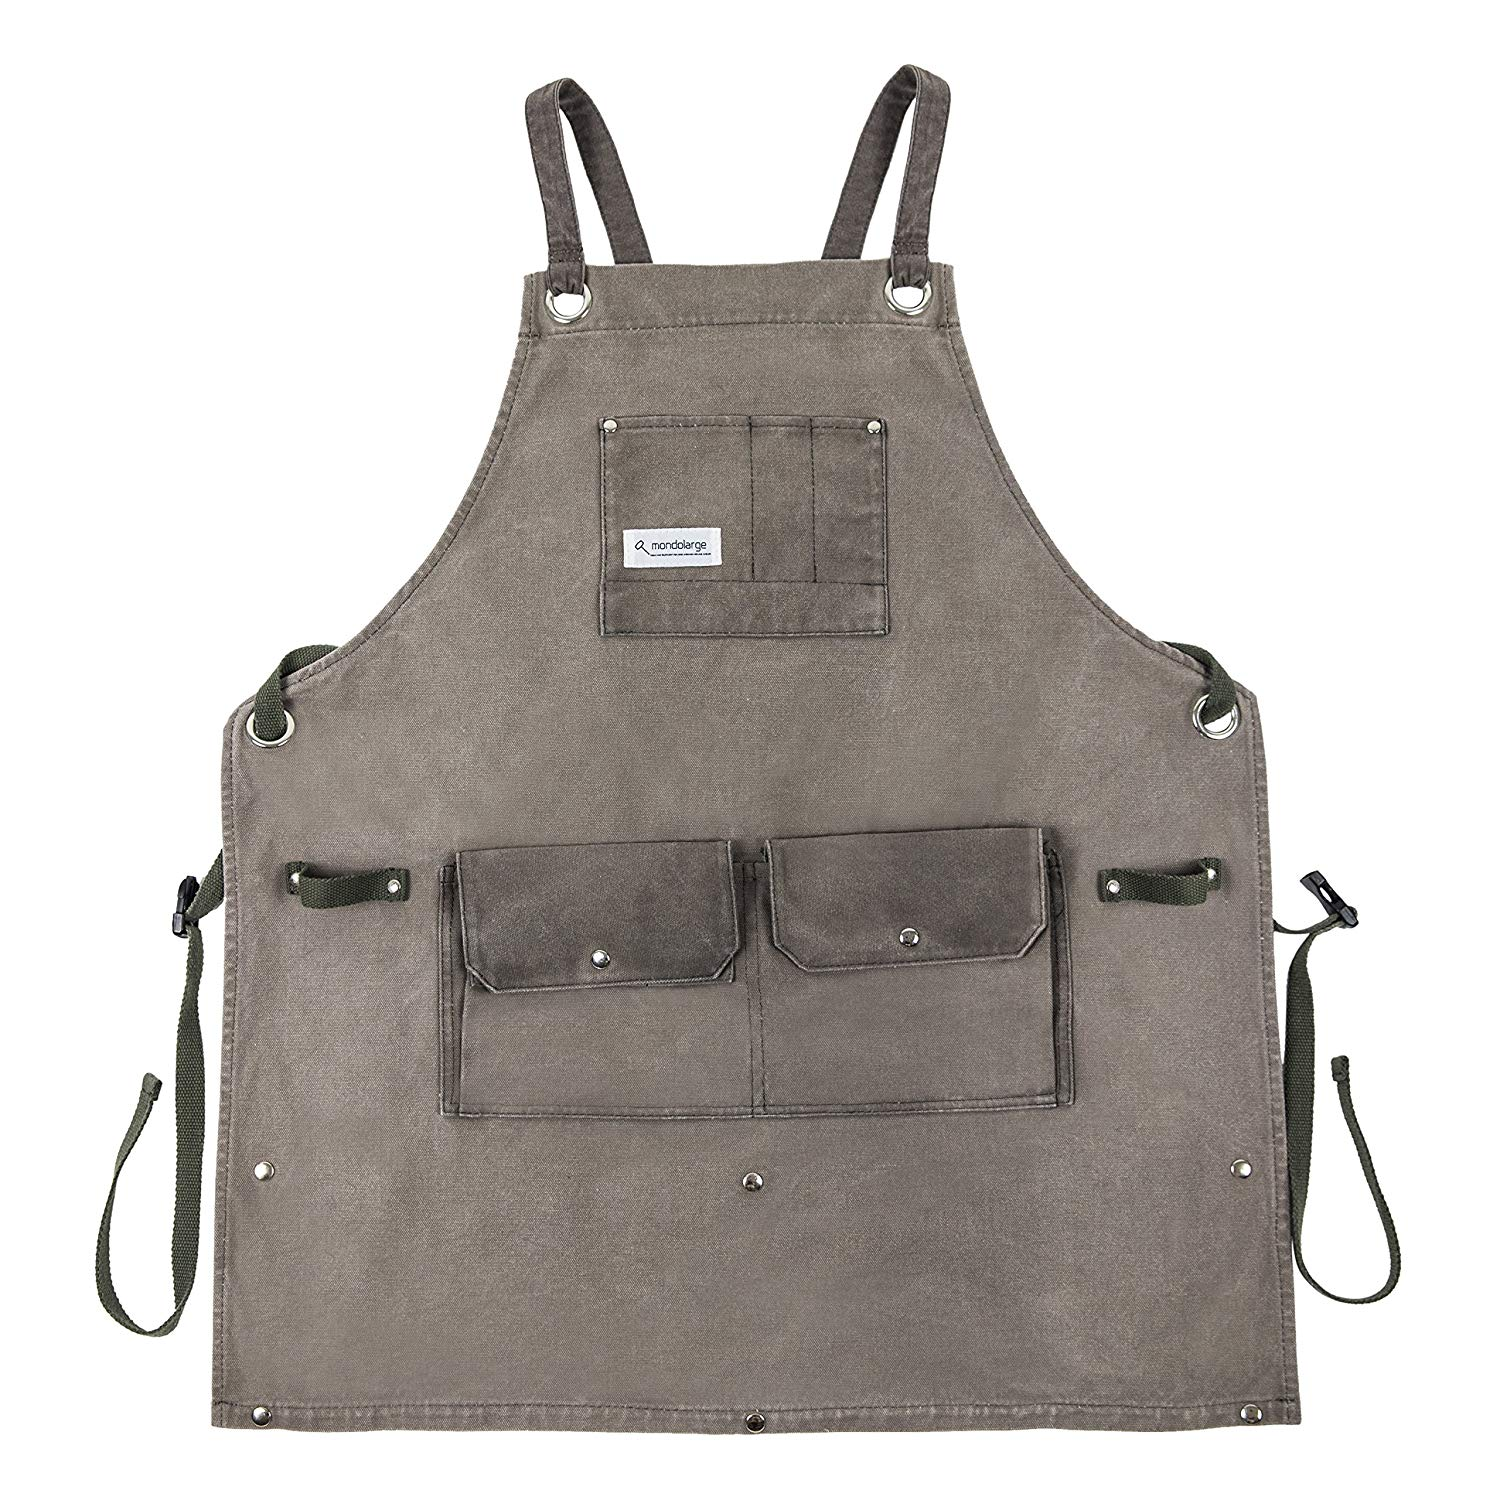 Mondolarge waxed canvas heavy duty garden workshop utility craft tool apron with pockets - Useful for carpenter welding artist painters chef waitress - Fits men women adults small to plus size xxl.